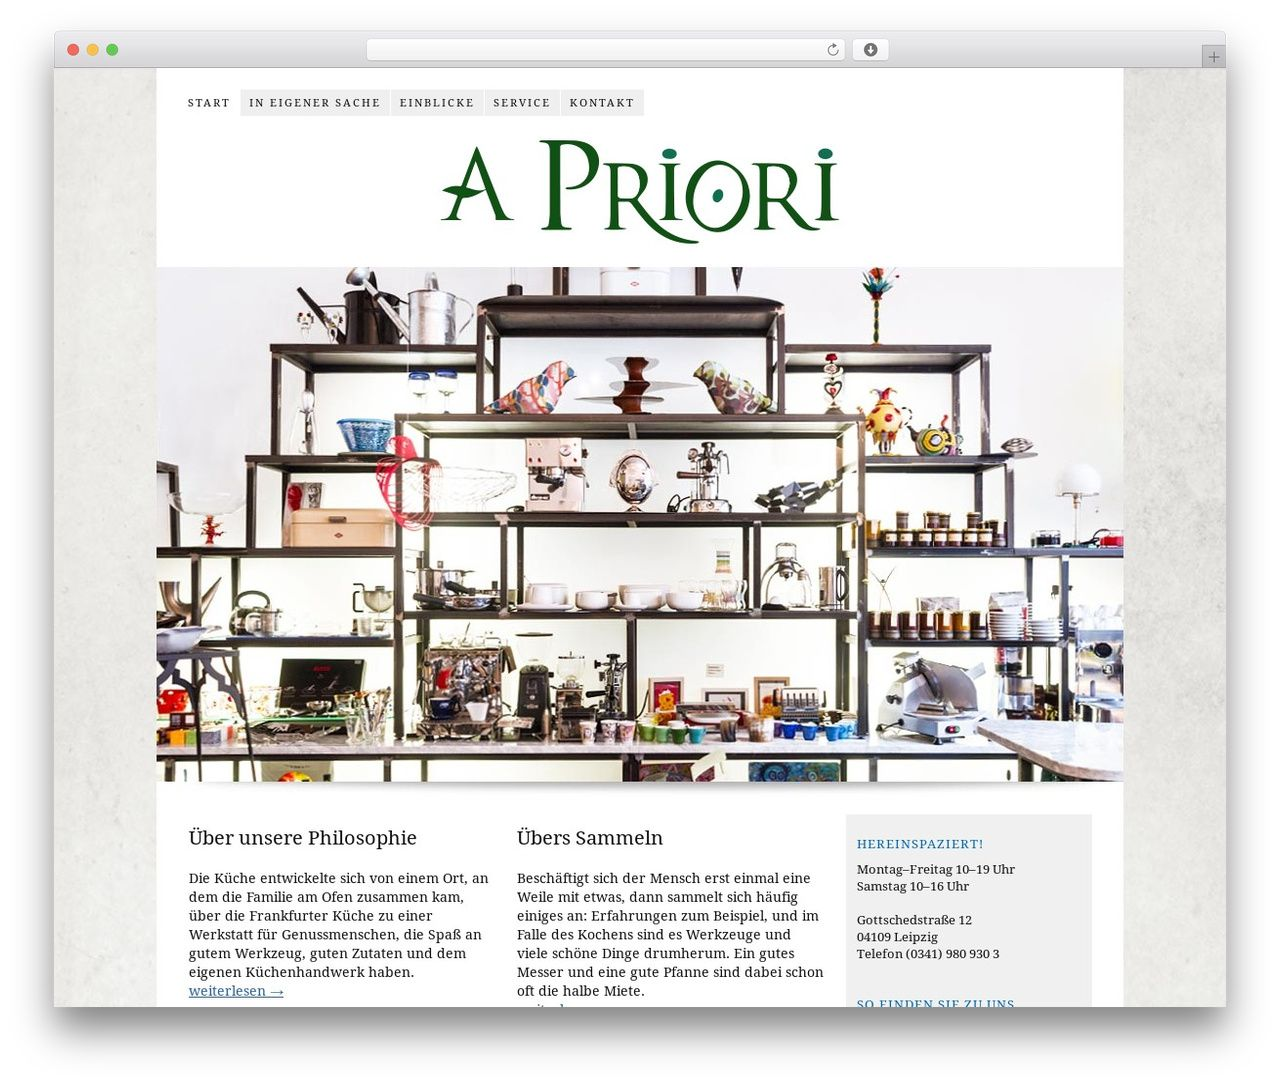 Thesis Best Wordpress Template By Chris Pearson A Priori De Wordpress Template Templates